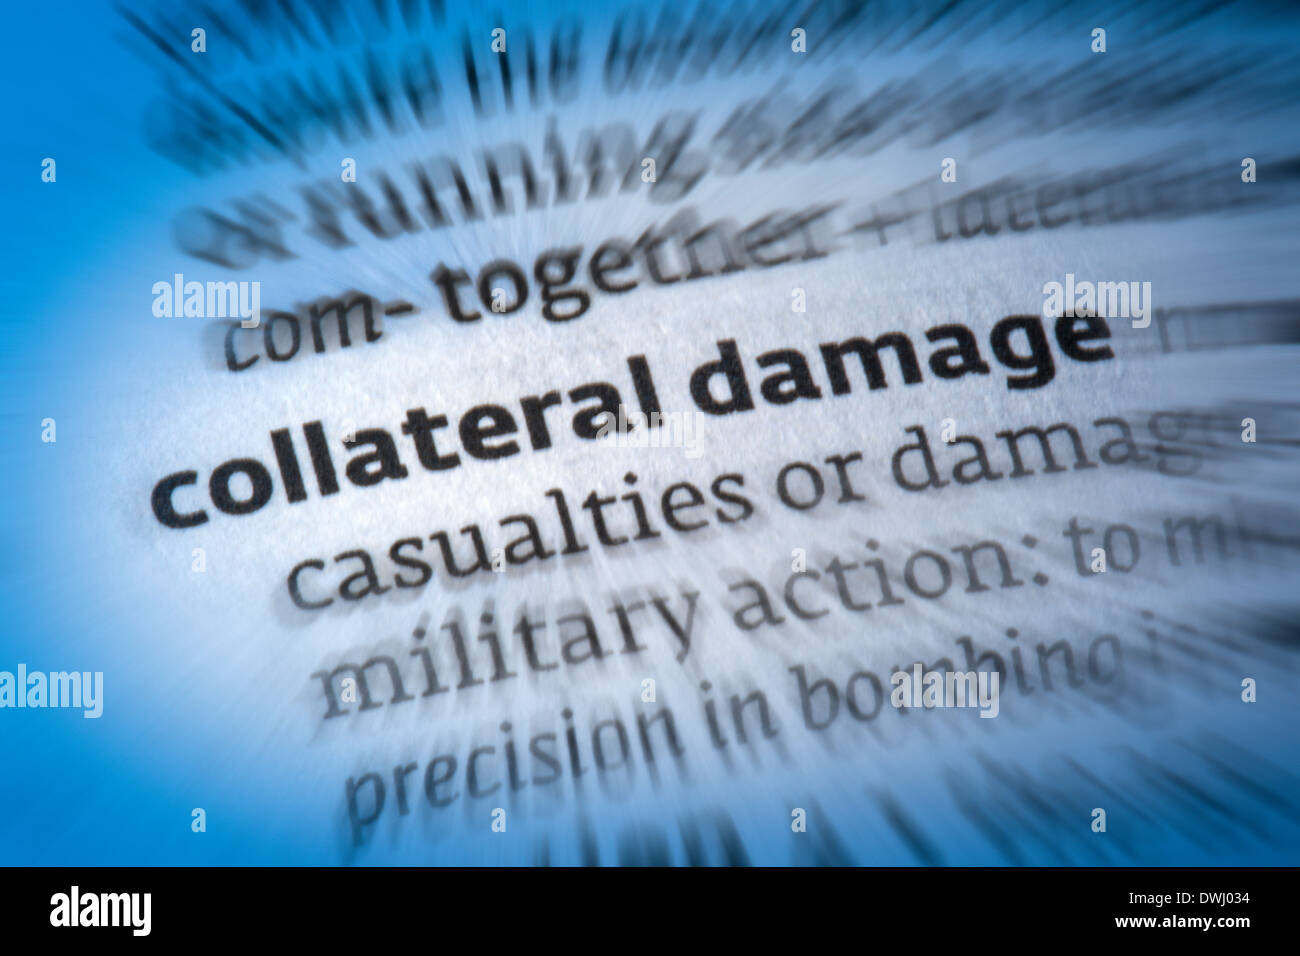 Collateral Damage - Stock Image